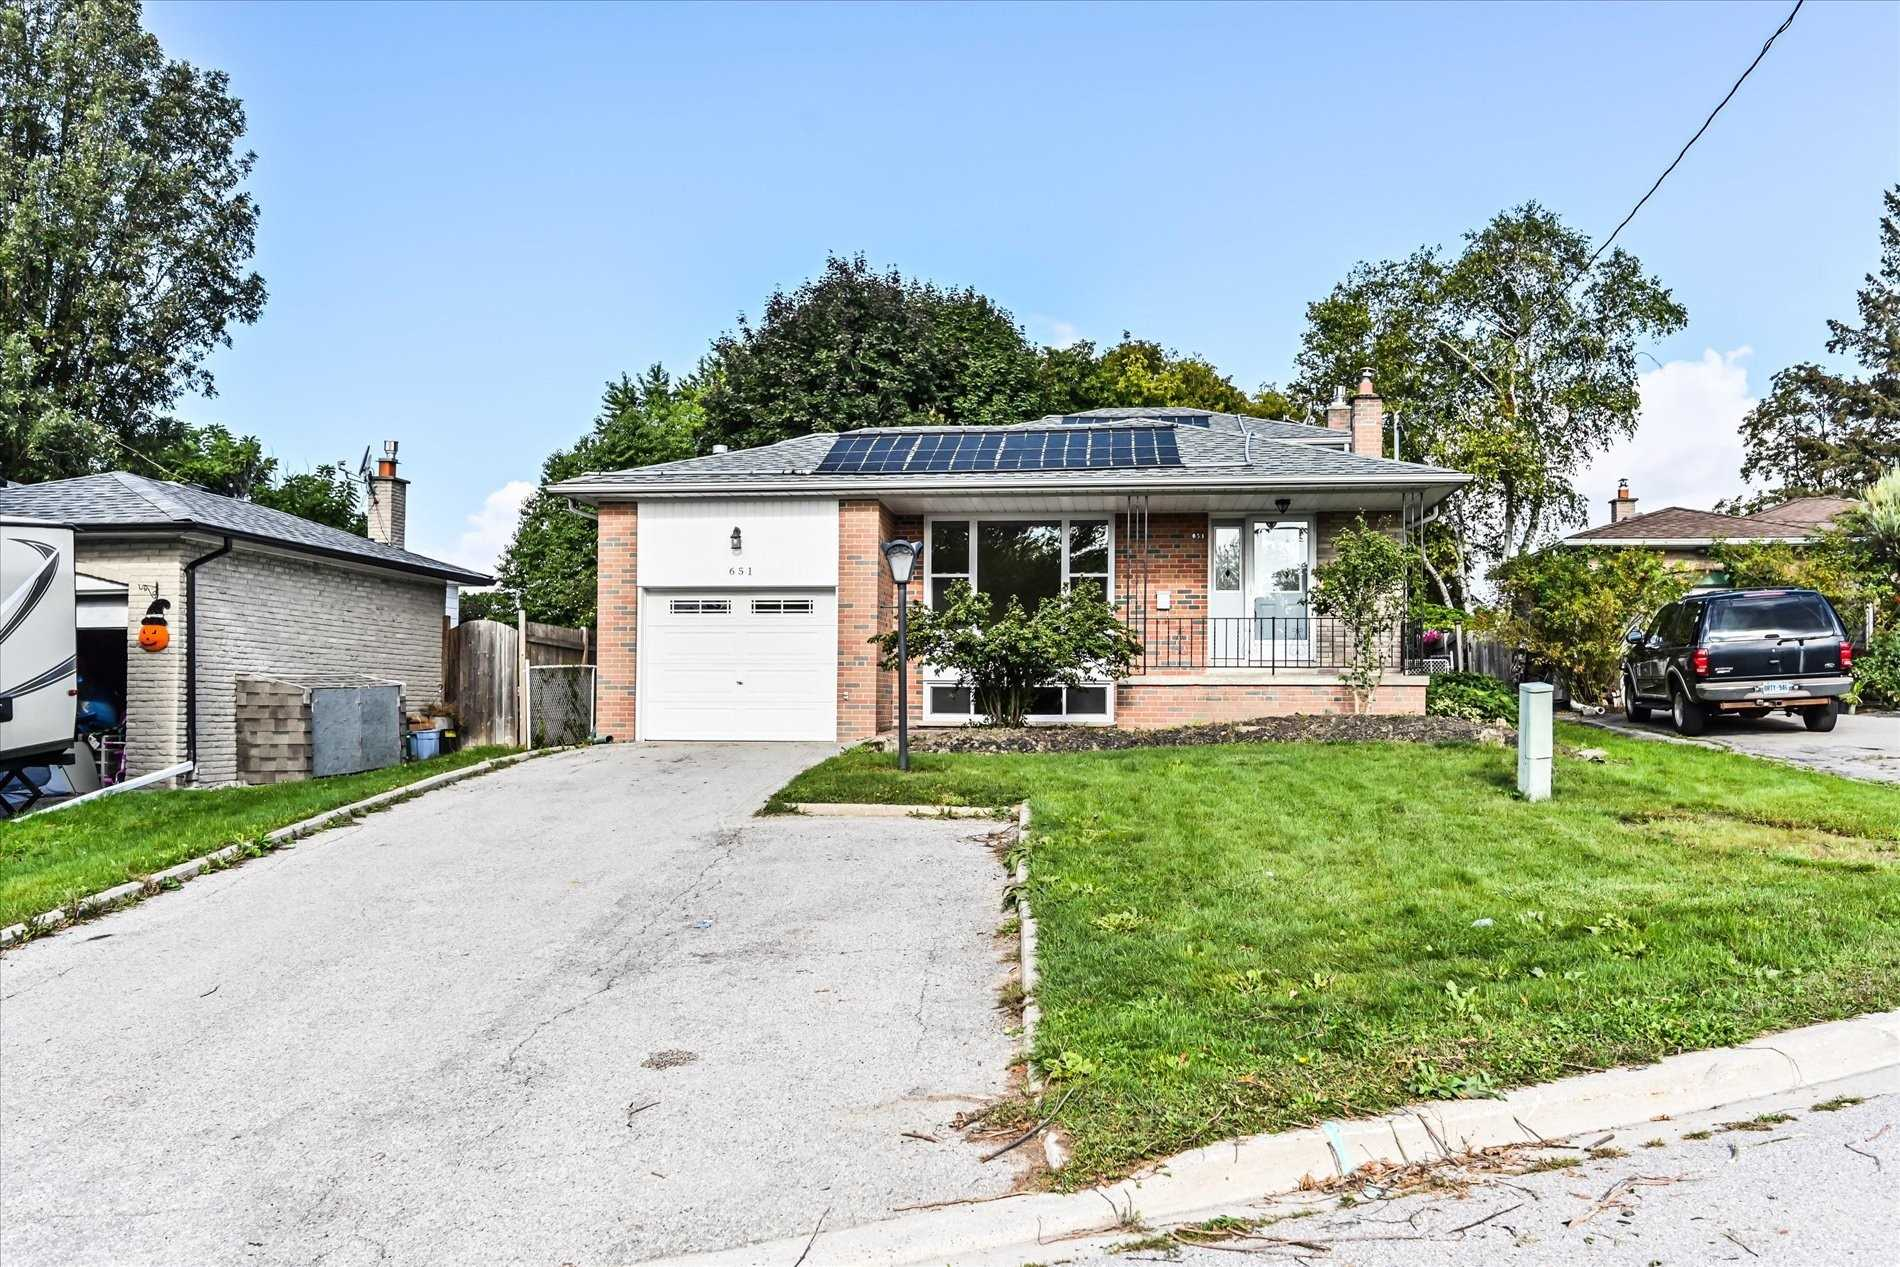 Detached house For Sale In Newmarket - 651 Park Crt, Newmarket, Ontario, Canada L3Y 3N5 , 2 Bedrooms Bedrooms, ,2 BathroomsBathrooms,Detached,For Sale,Park